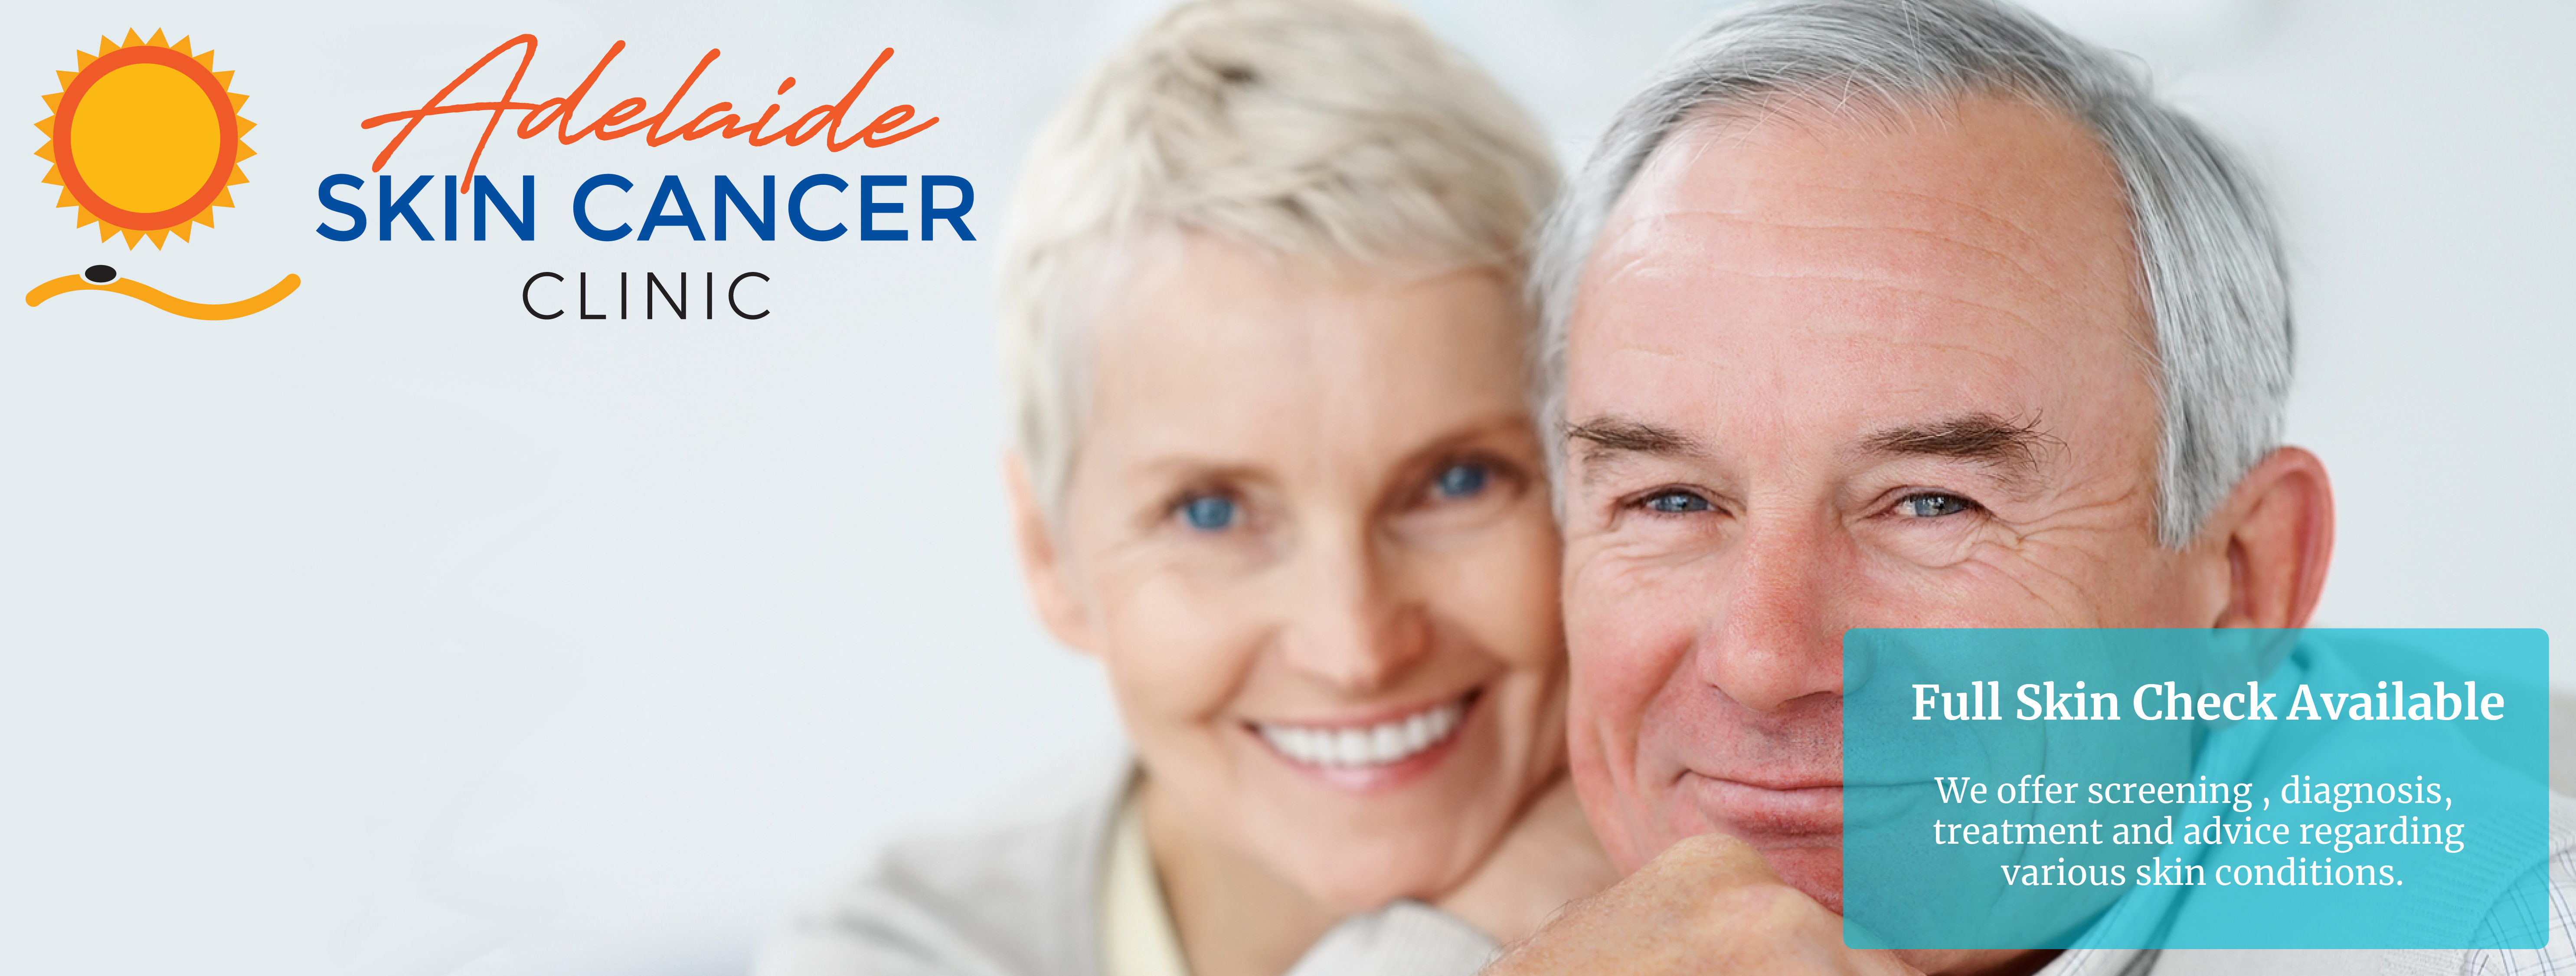 Adelaide Skin Cancer Clinic